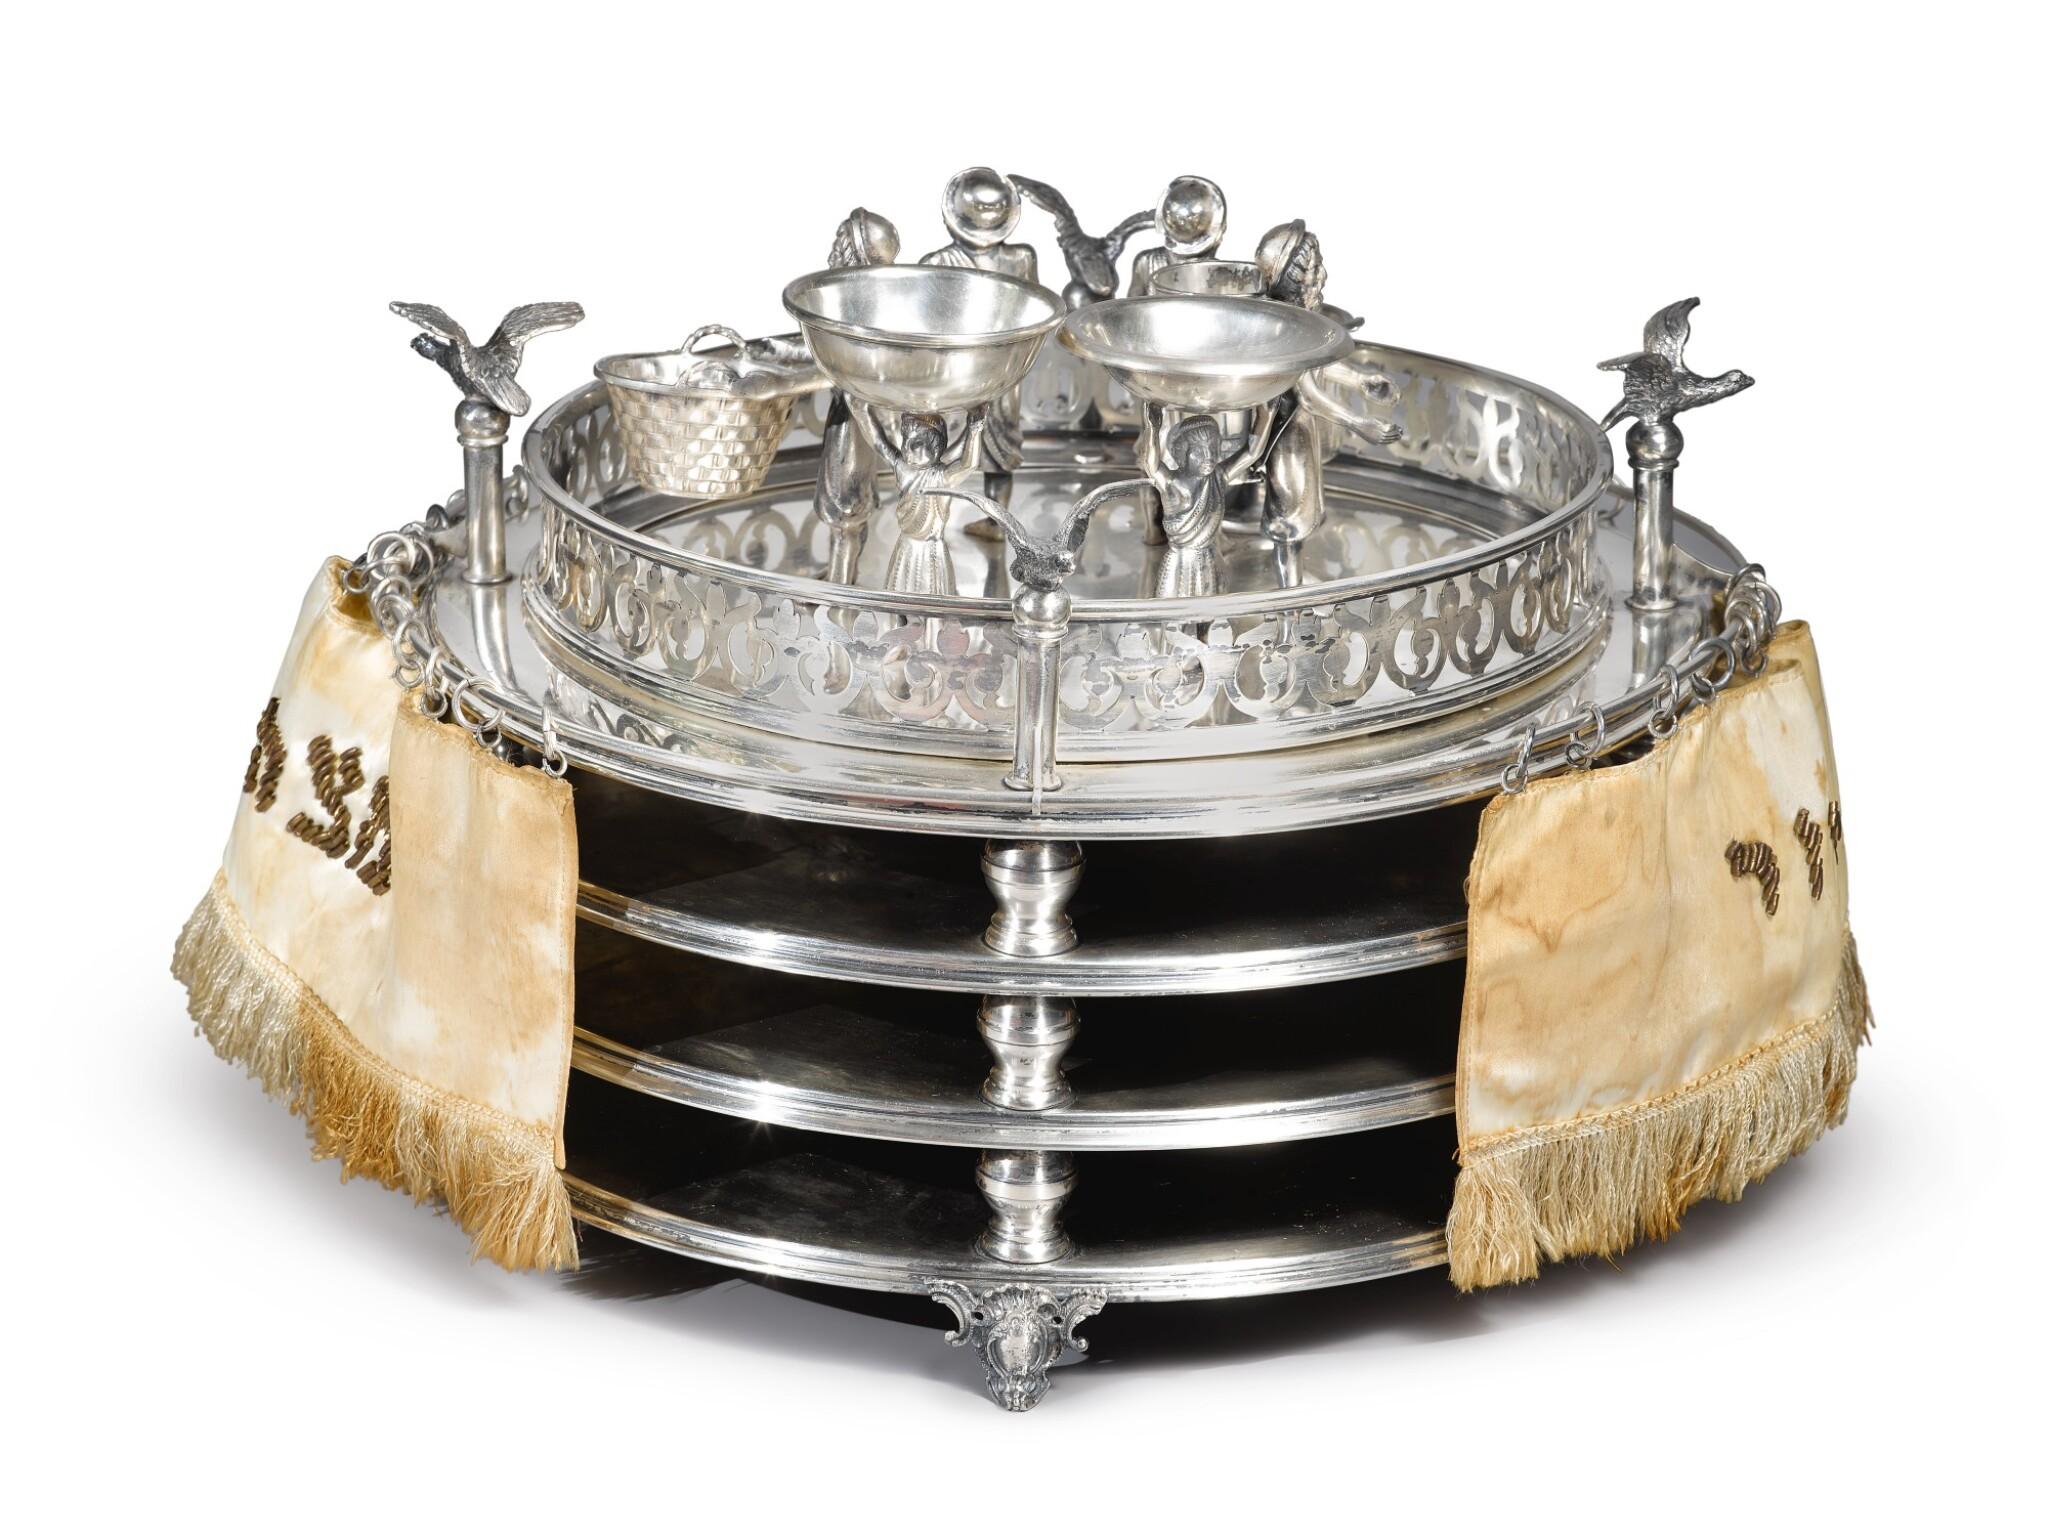 View full screen - View 1 of Lot 143. A SILVER SEDER COMPENDIUM, PROBABLY GERMAN OR AUSTRIAN, LATE 19TH CENTURY.